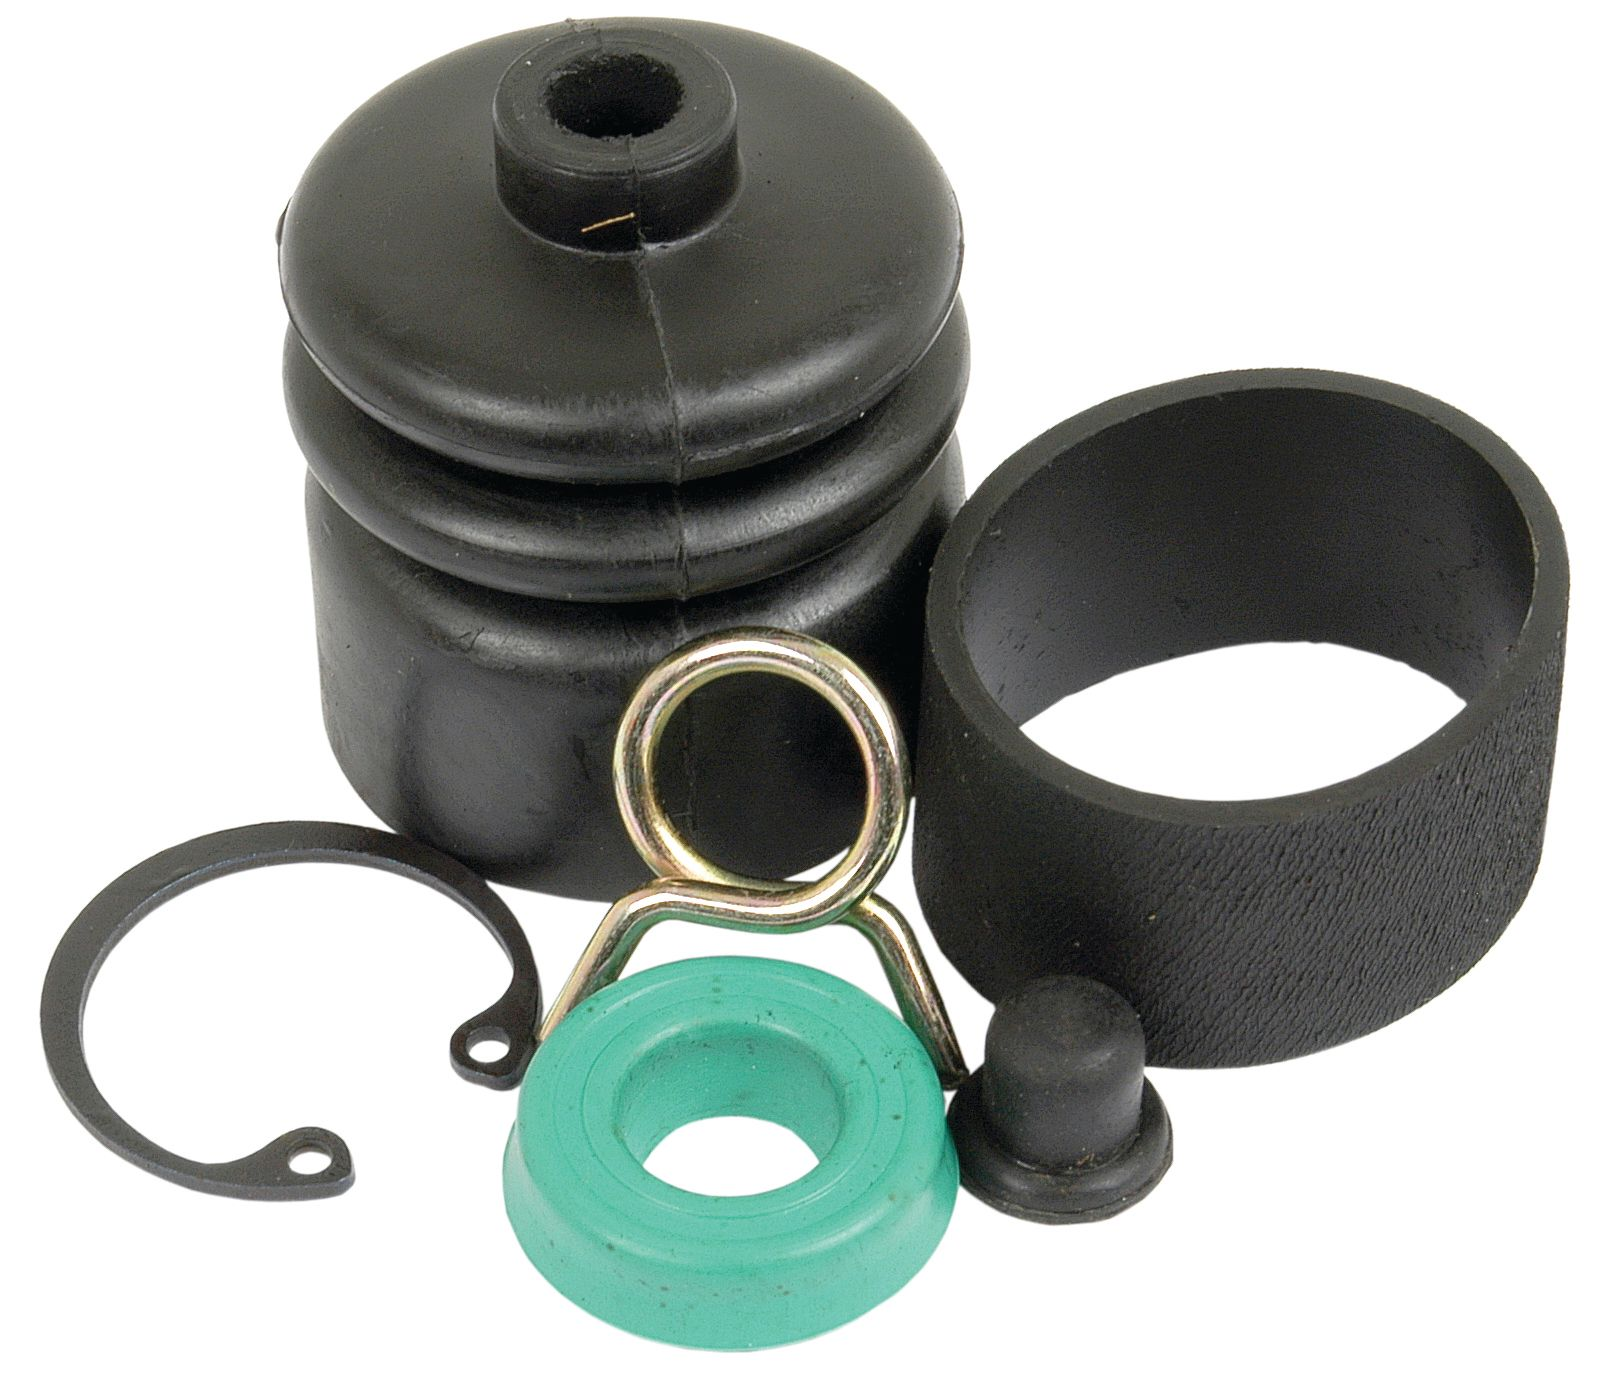 DAVID BROWN SEAL KIT 57762